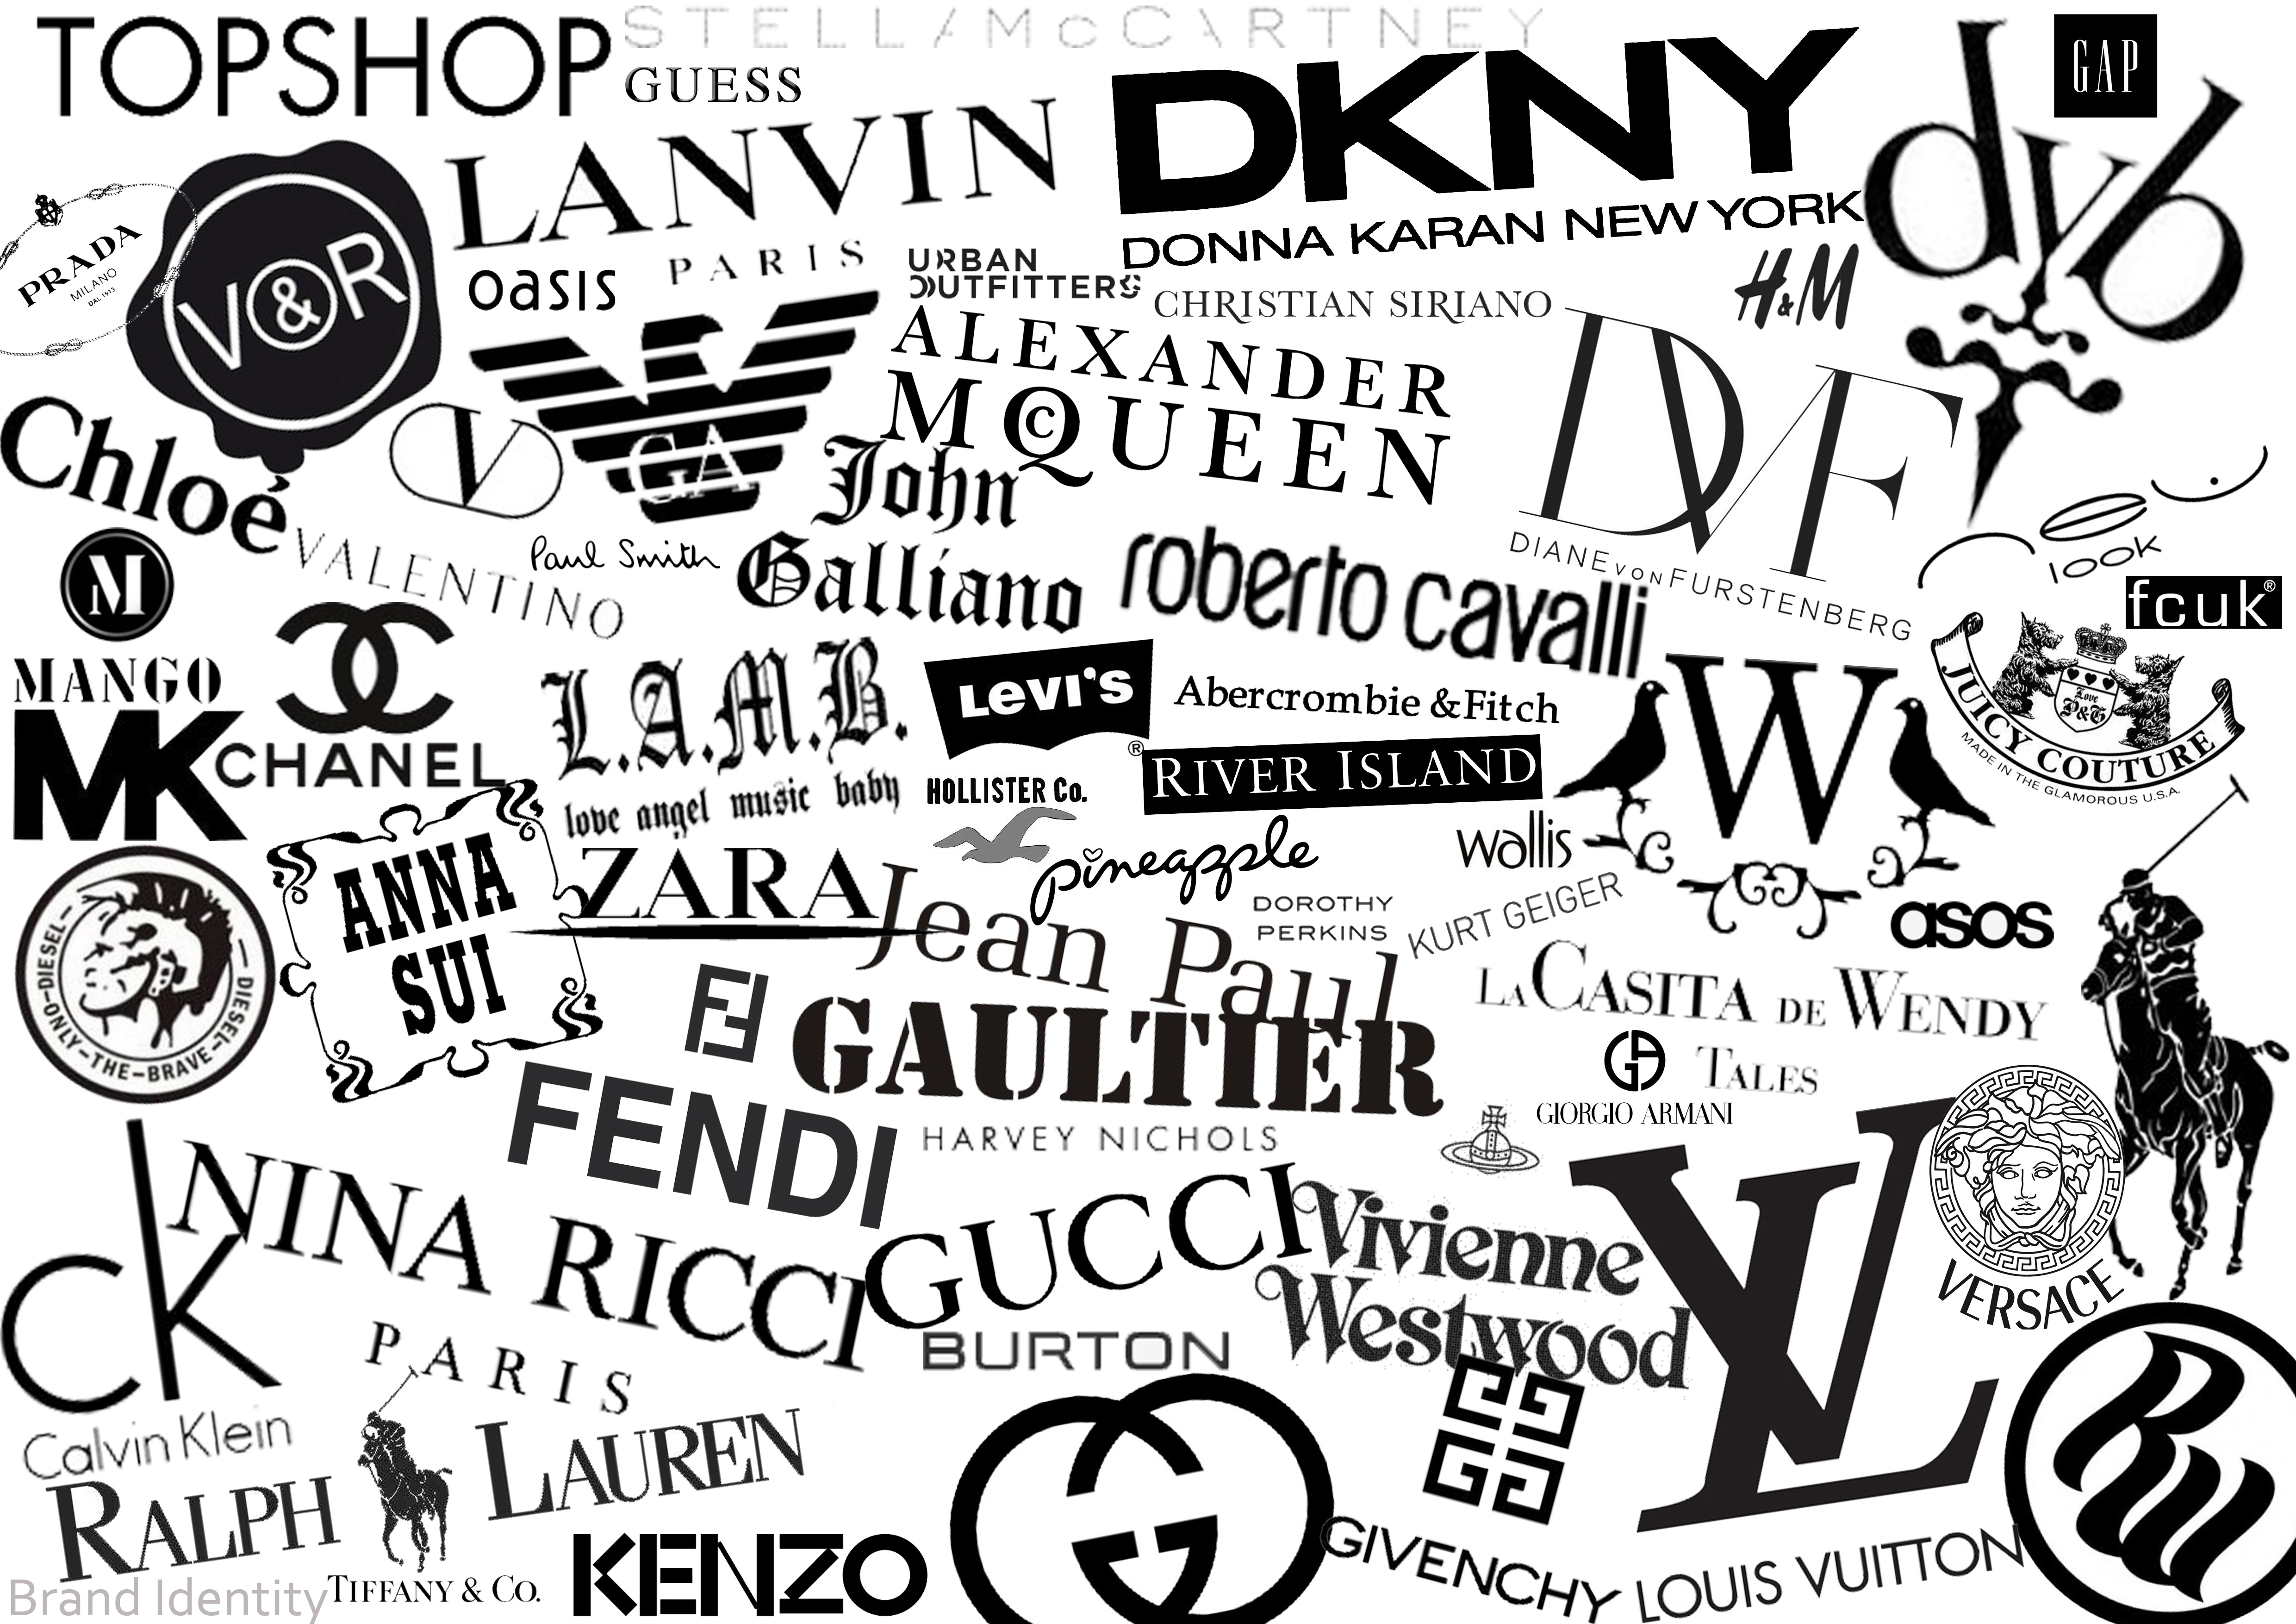 Fashion Brands I'd Love to Own